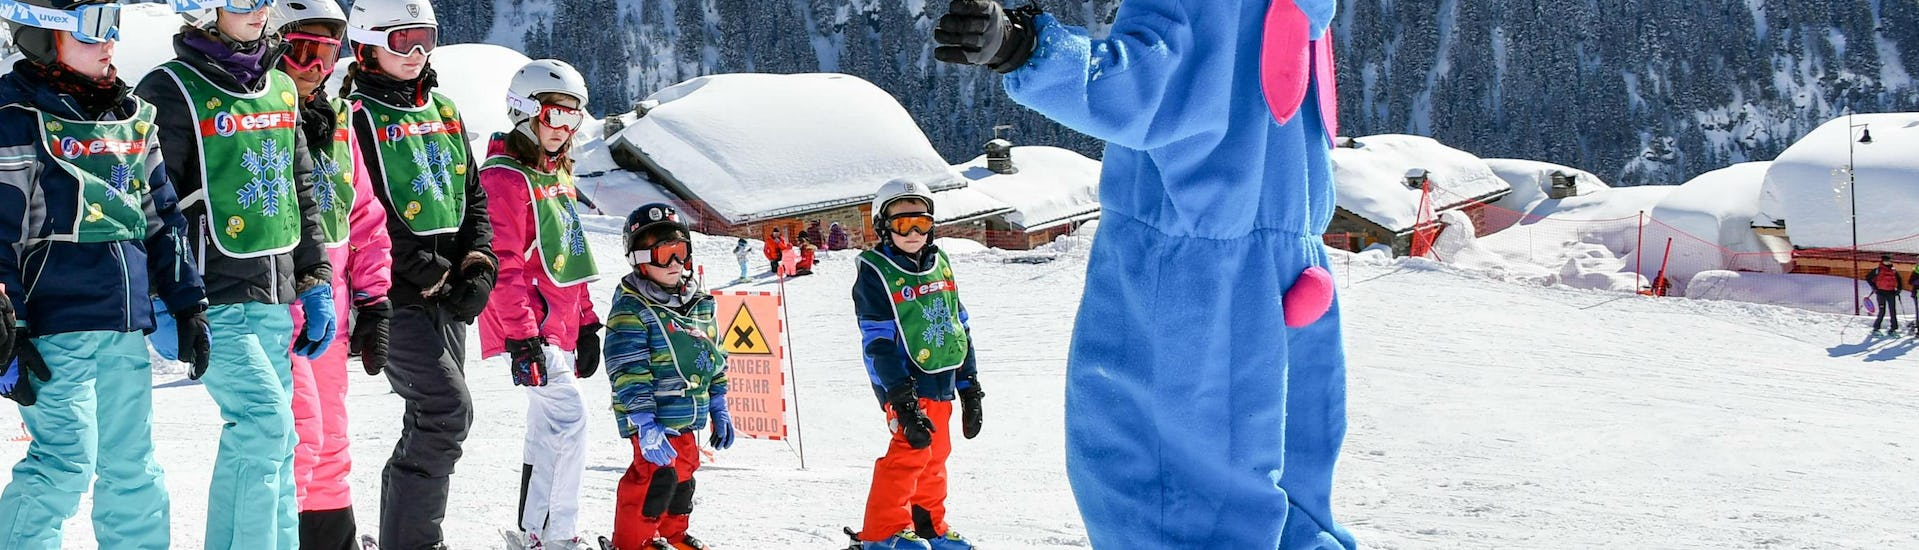 Kids Ski Lessons (5-13 years) - With Daycare